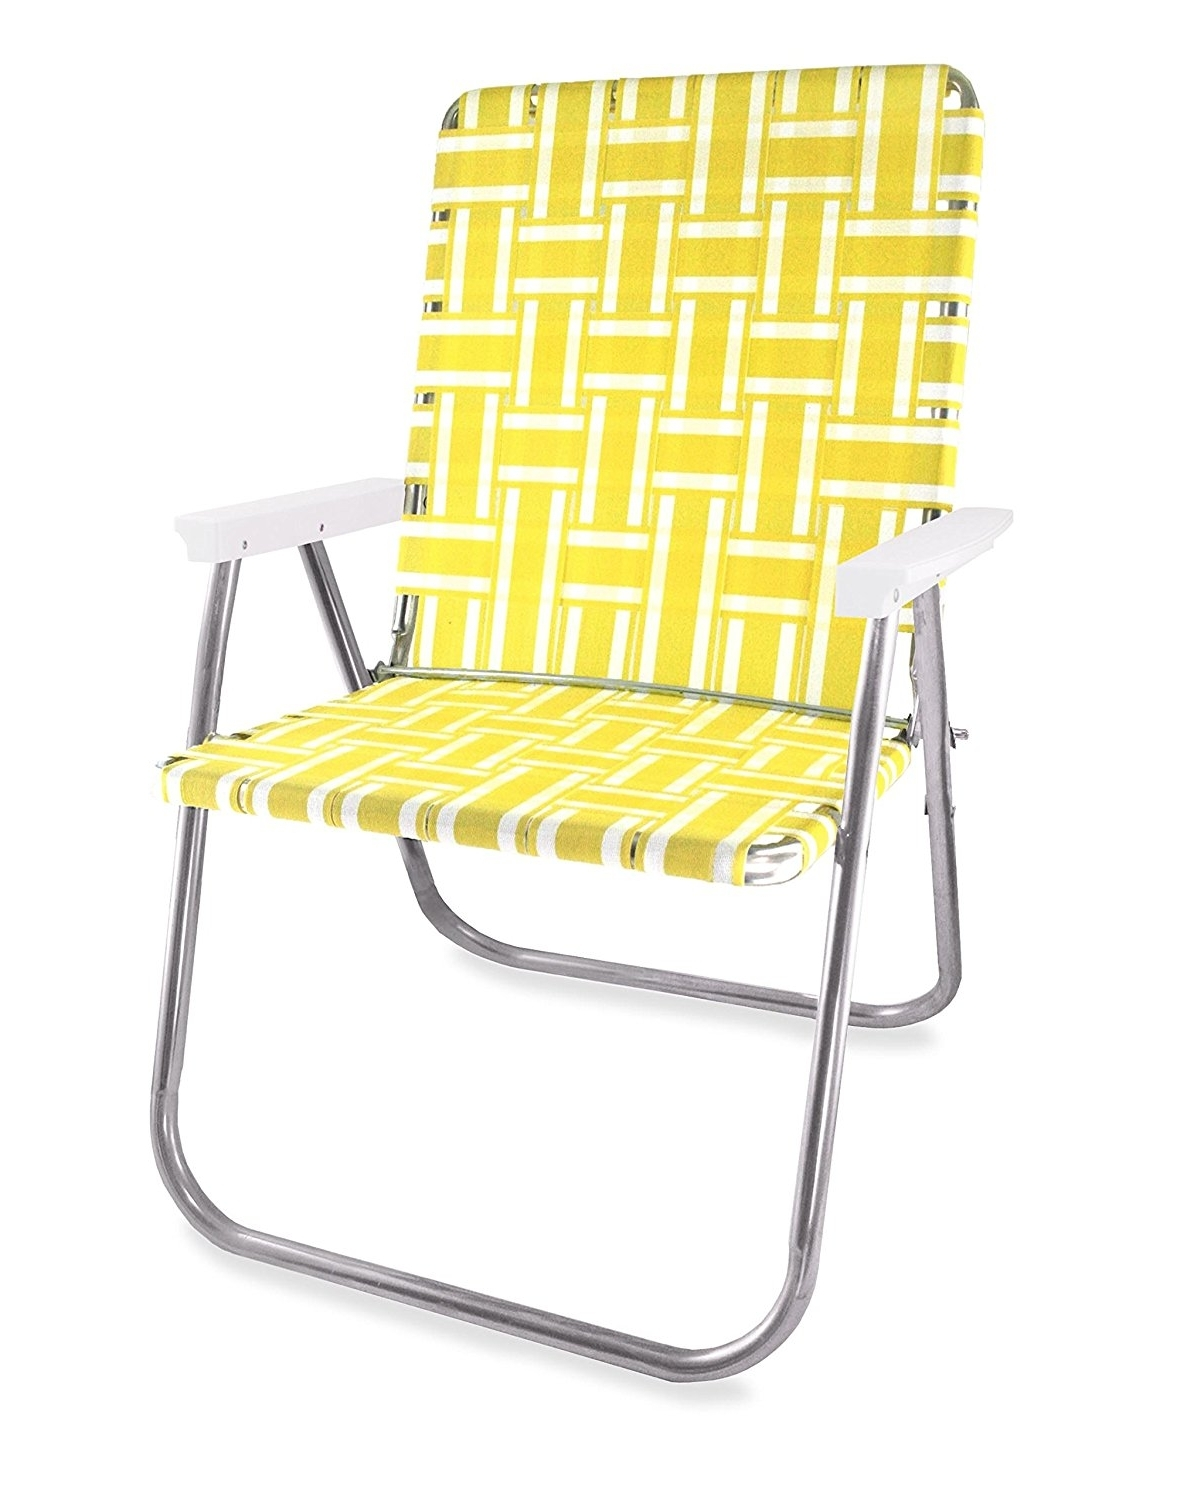 Widely Used Amazon : Lawn Chair Usa Aluminum Webbed Chair (Picnic Chair Within Lawn Chaises (View 15 of 15)